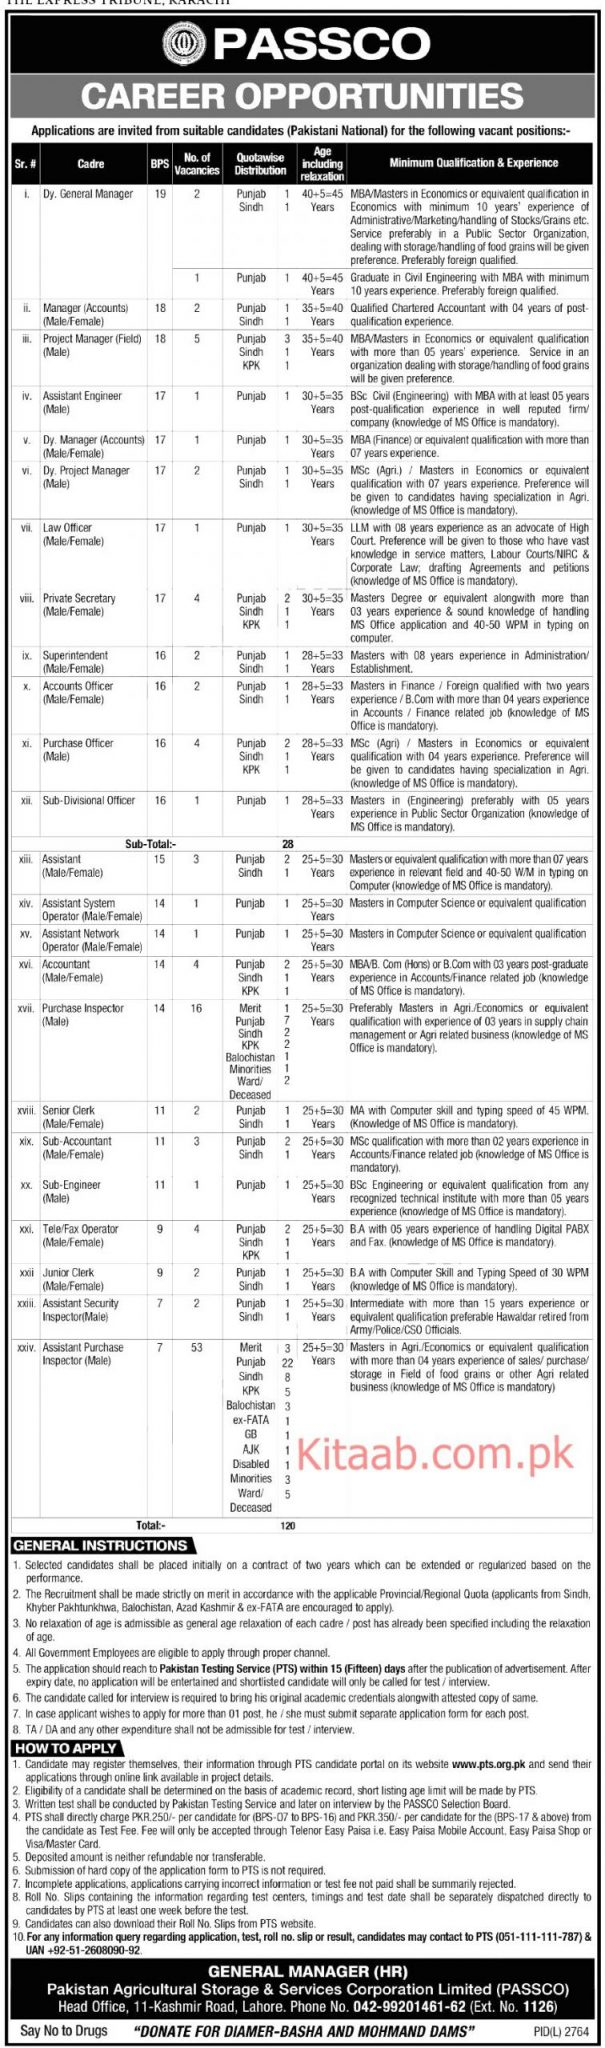 PASSCO Jobs 2020 Pakistan Agricultural Storage and Services Corporation PTS Test Date Eligibility criteria